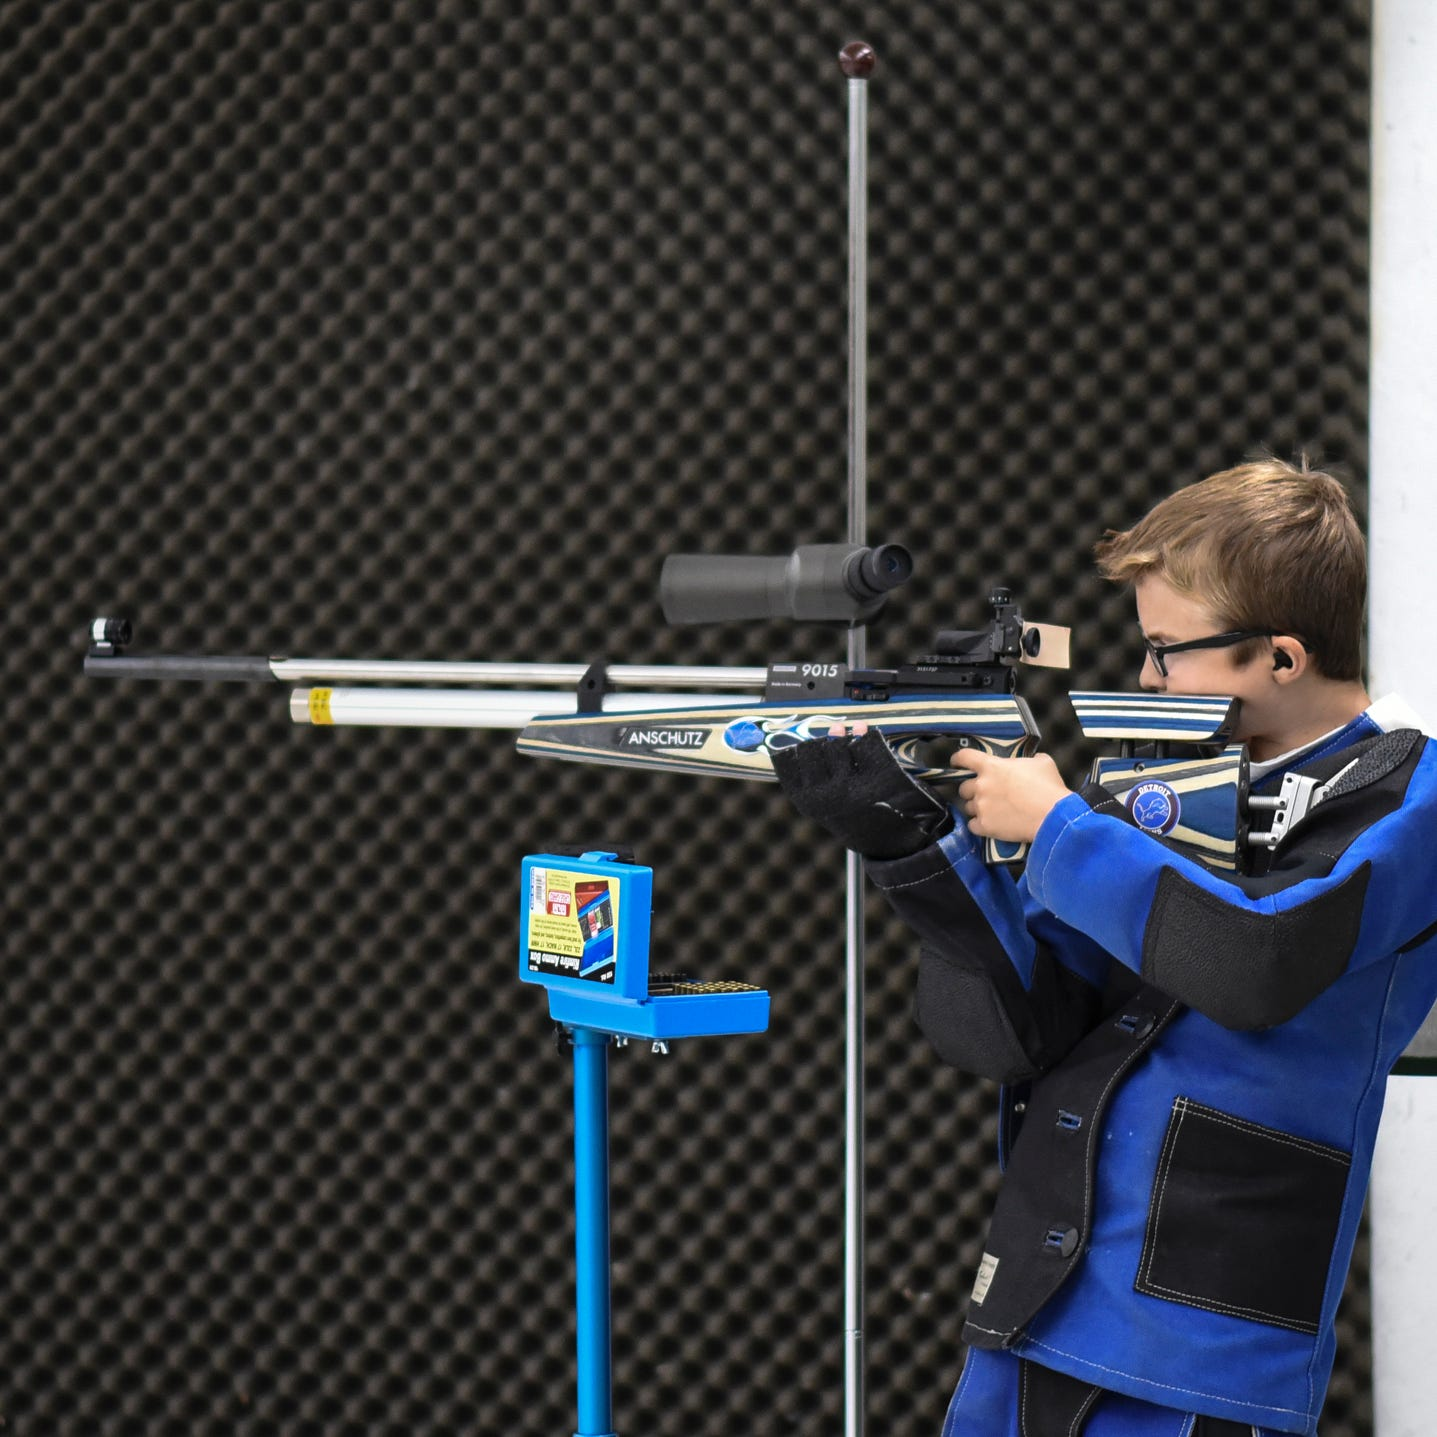 On target: Young marksman aiming for Junior Olympics